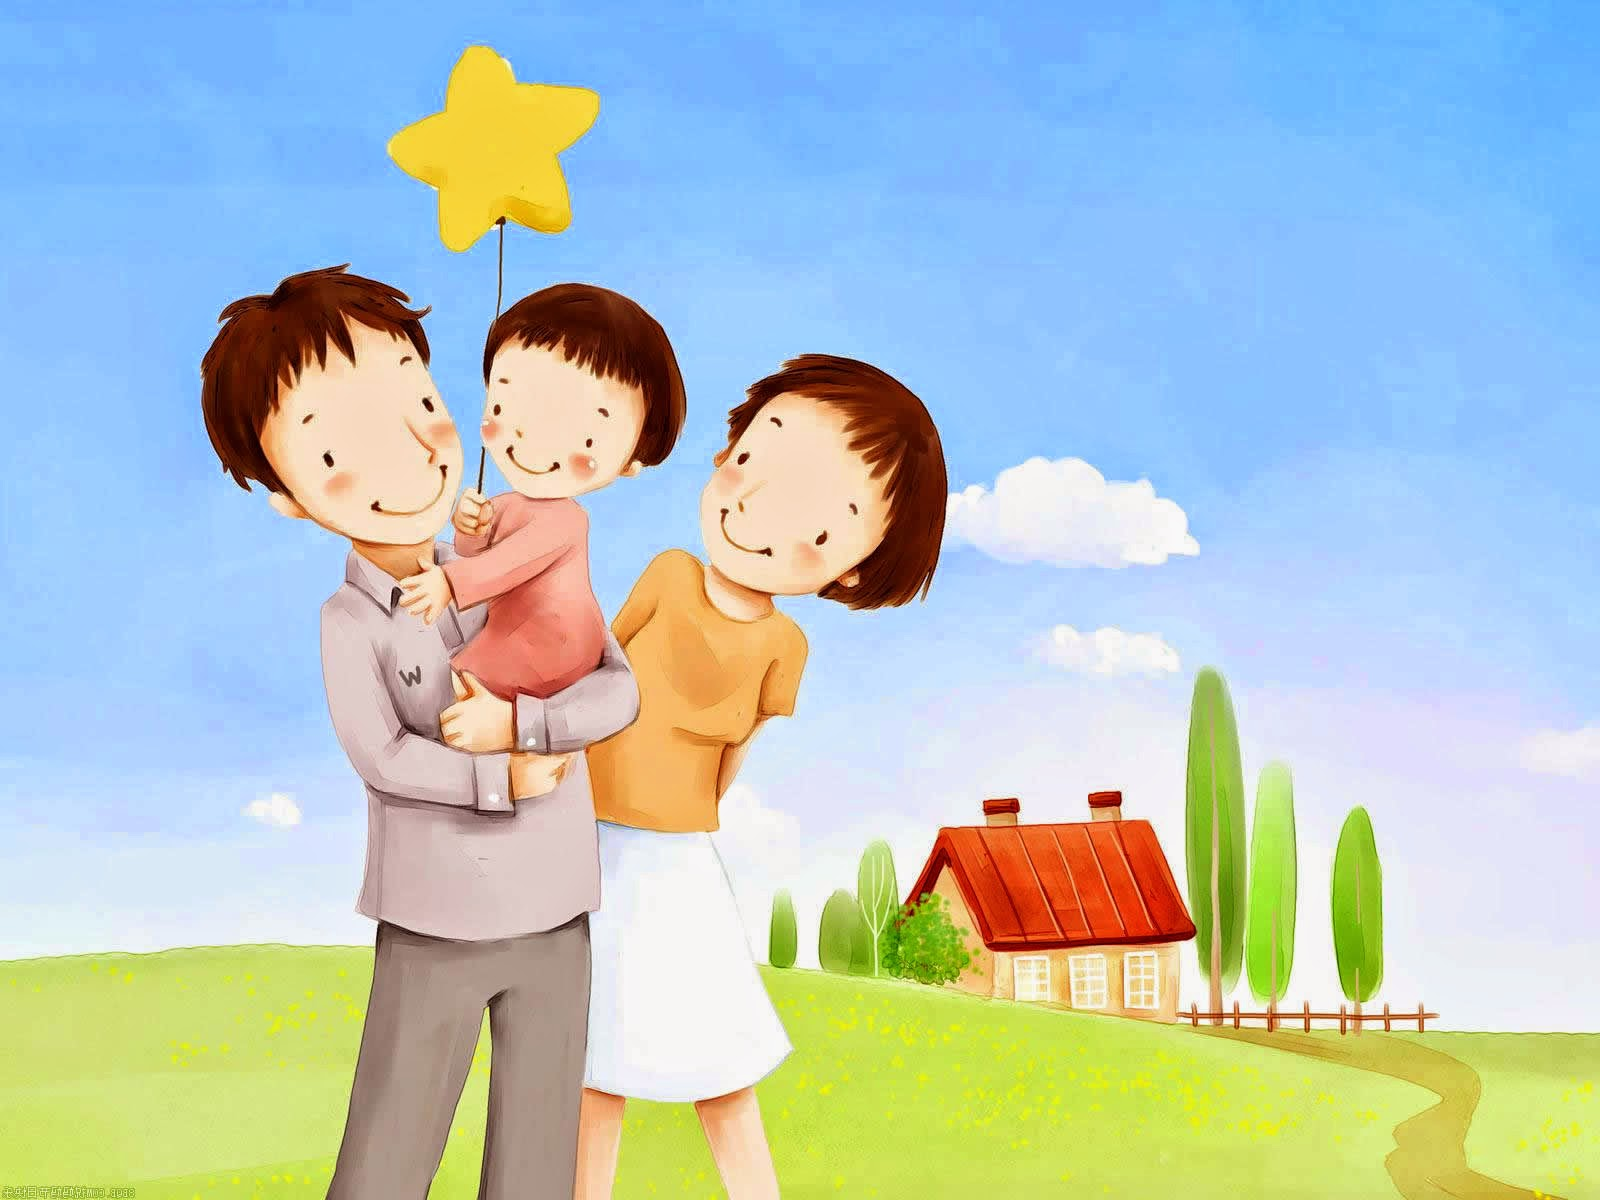 Lovely_illustration_of_Happy_family_on_sofa_wallcoo_com.jpg